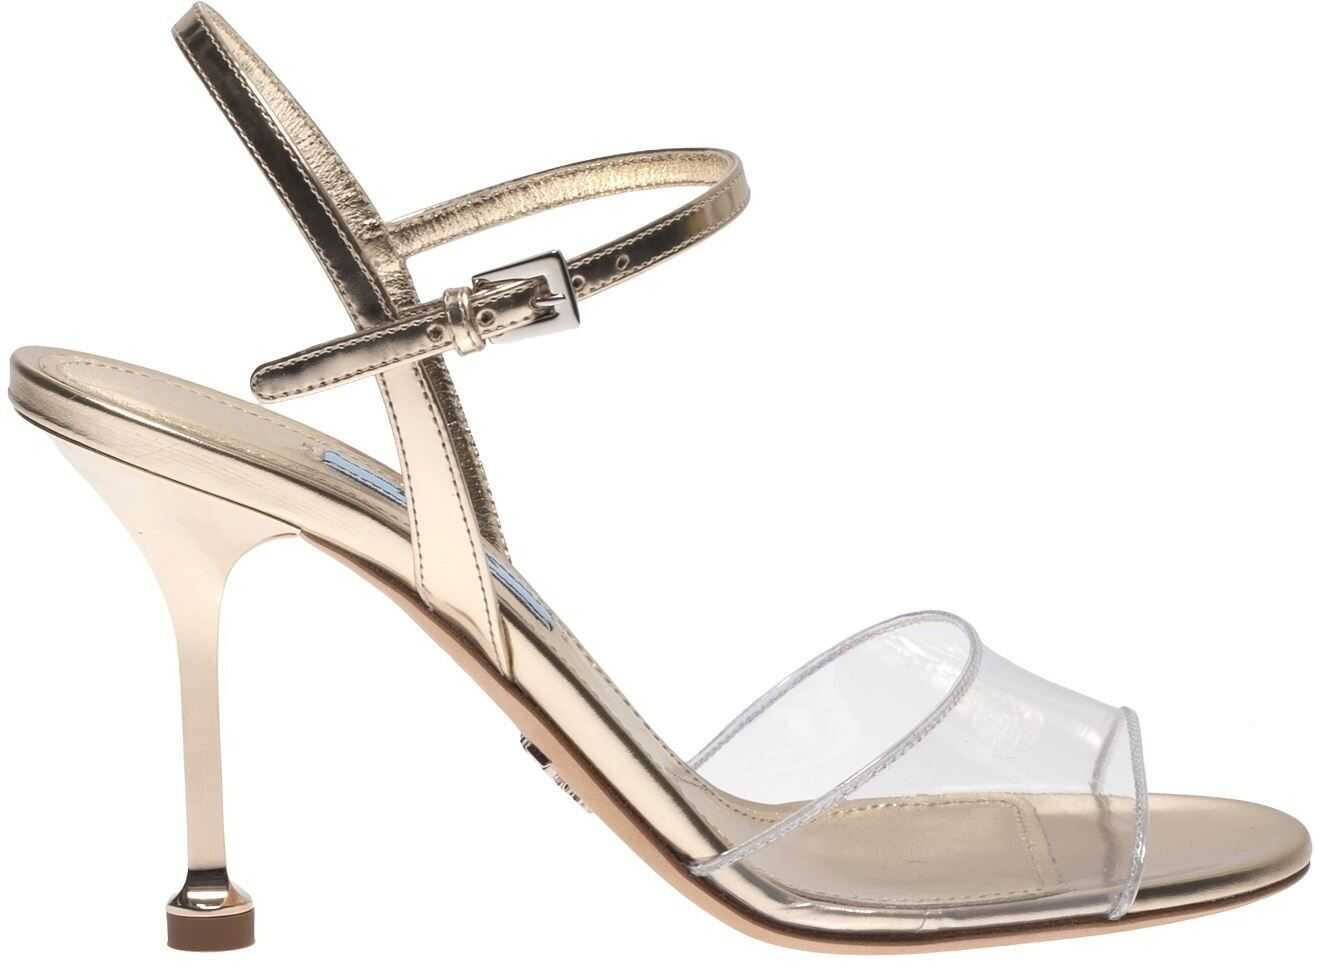 Prada Sandals In Golden Leather And Plexi Gold